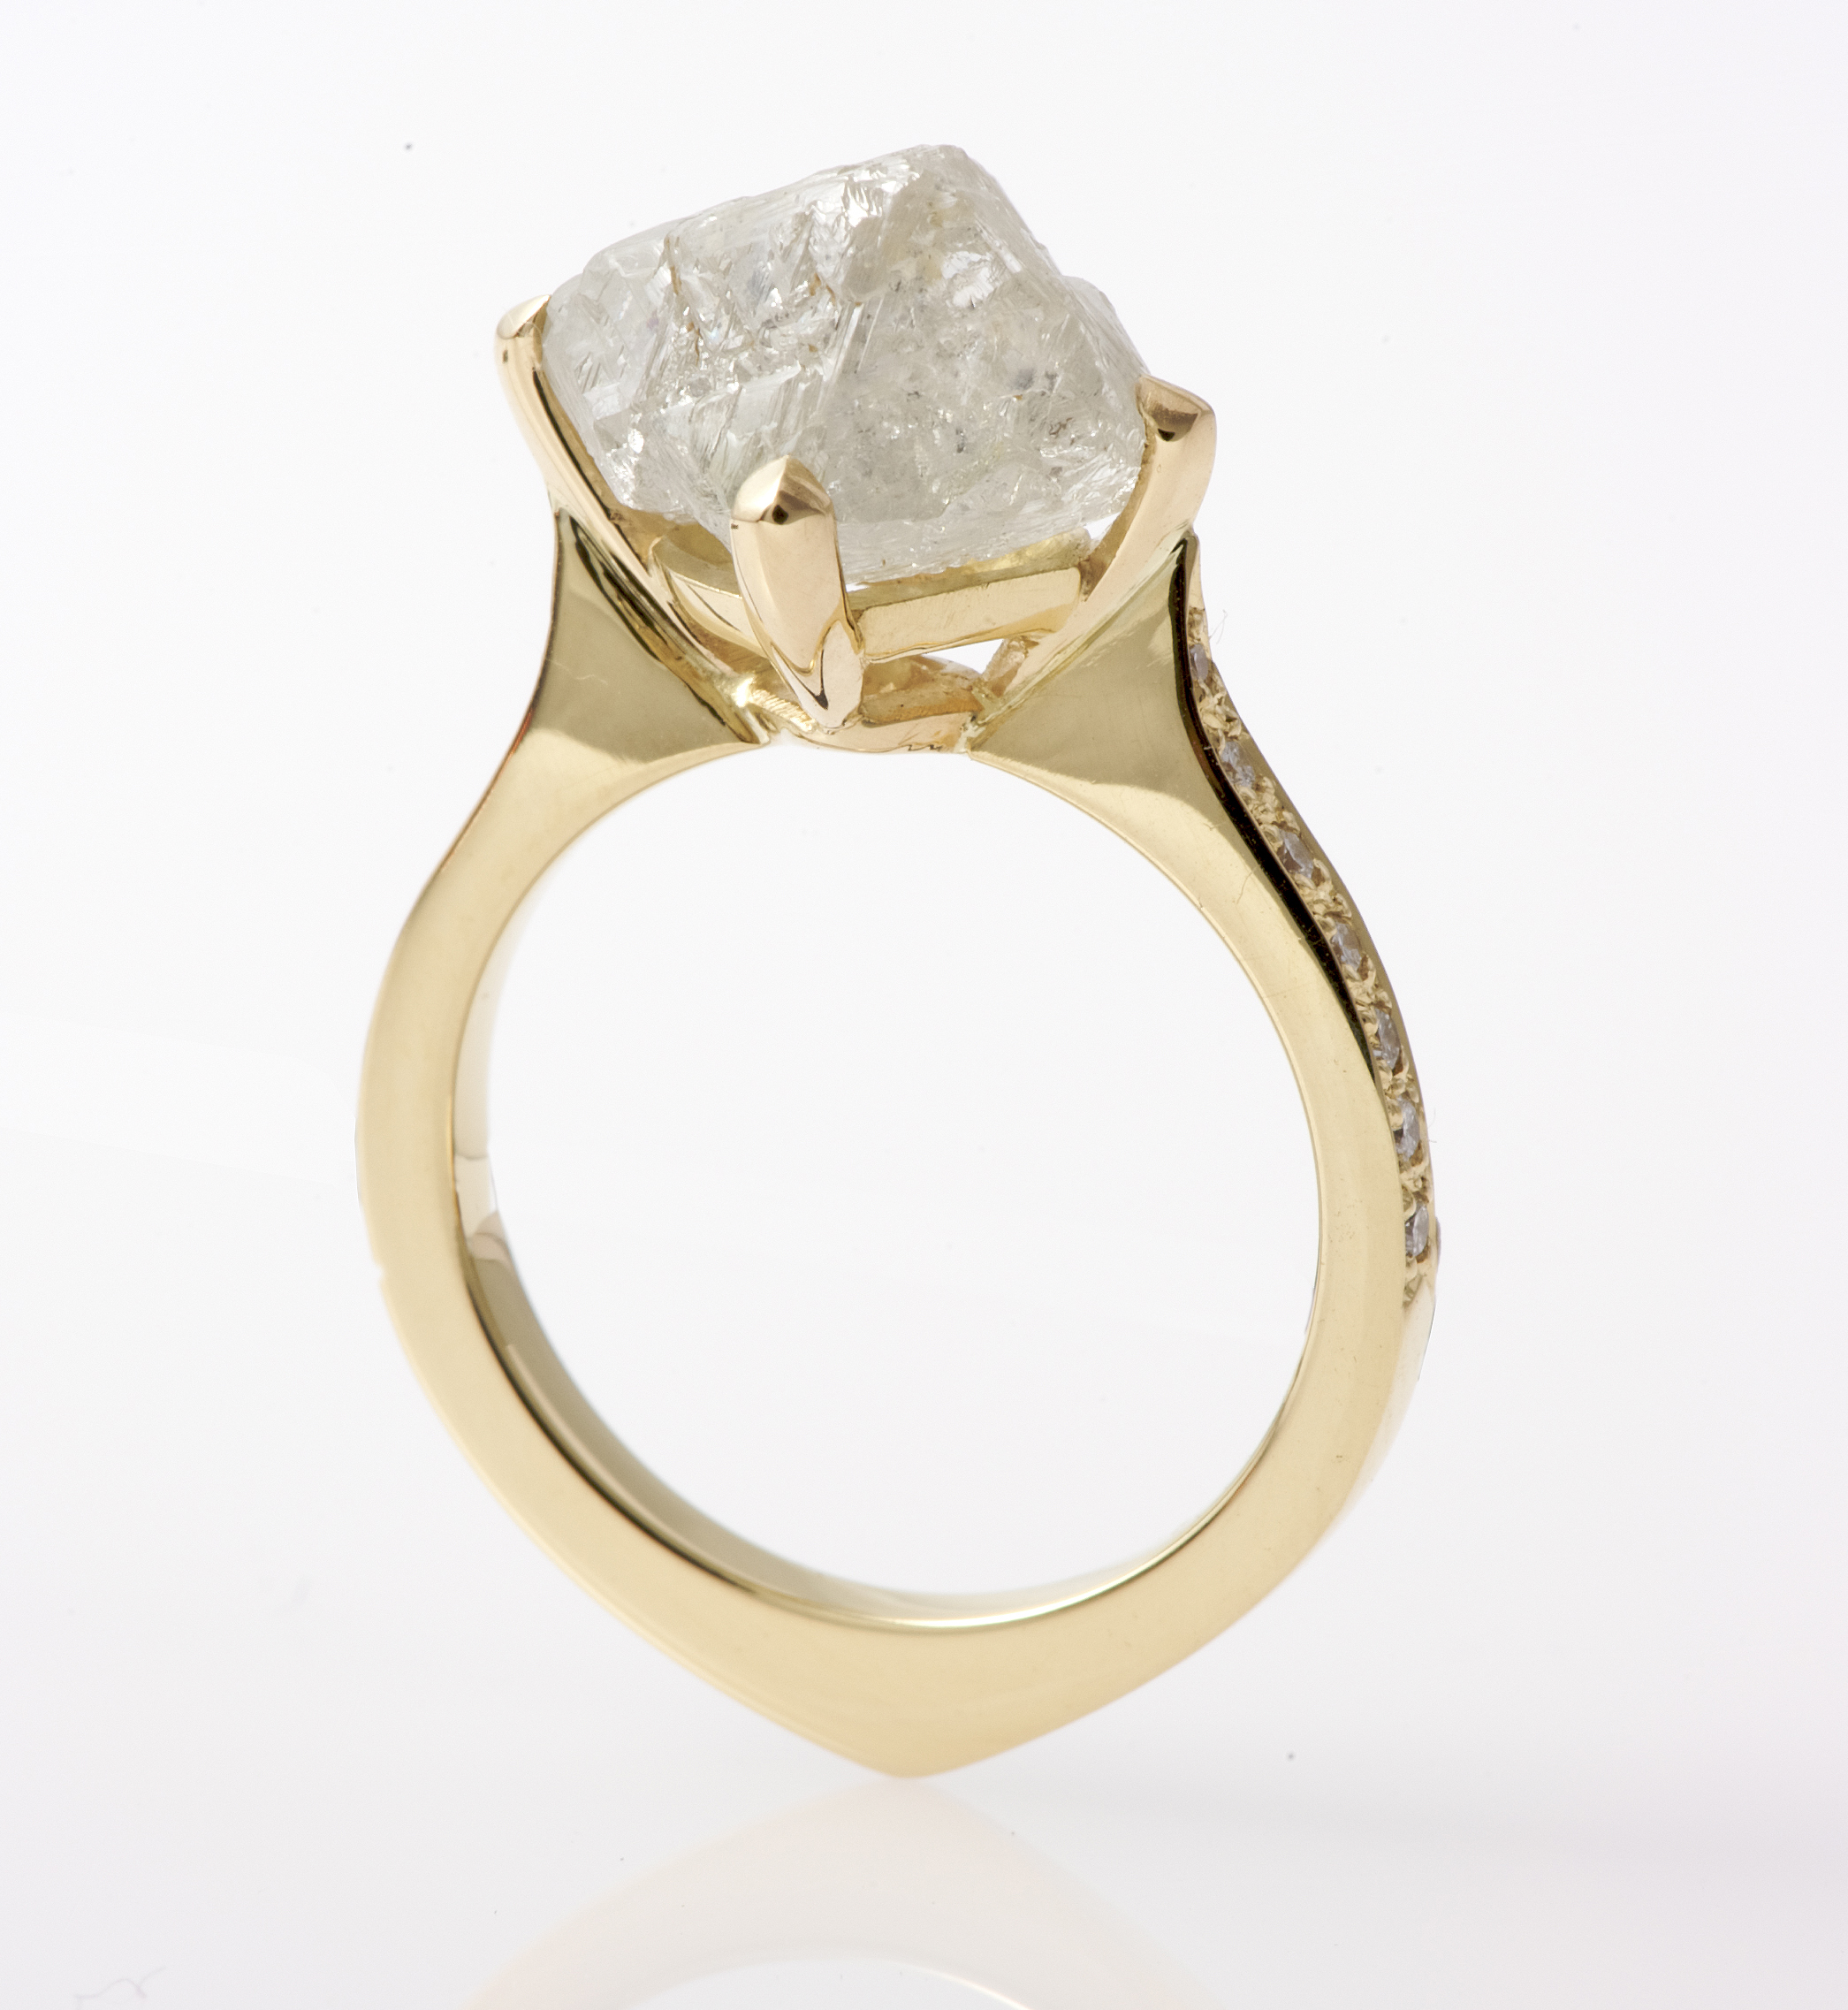 shop nature ring rose rings olivia leivankash jewellery gold statement